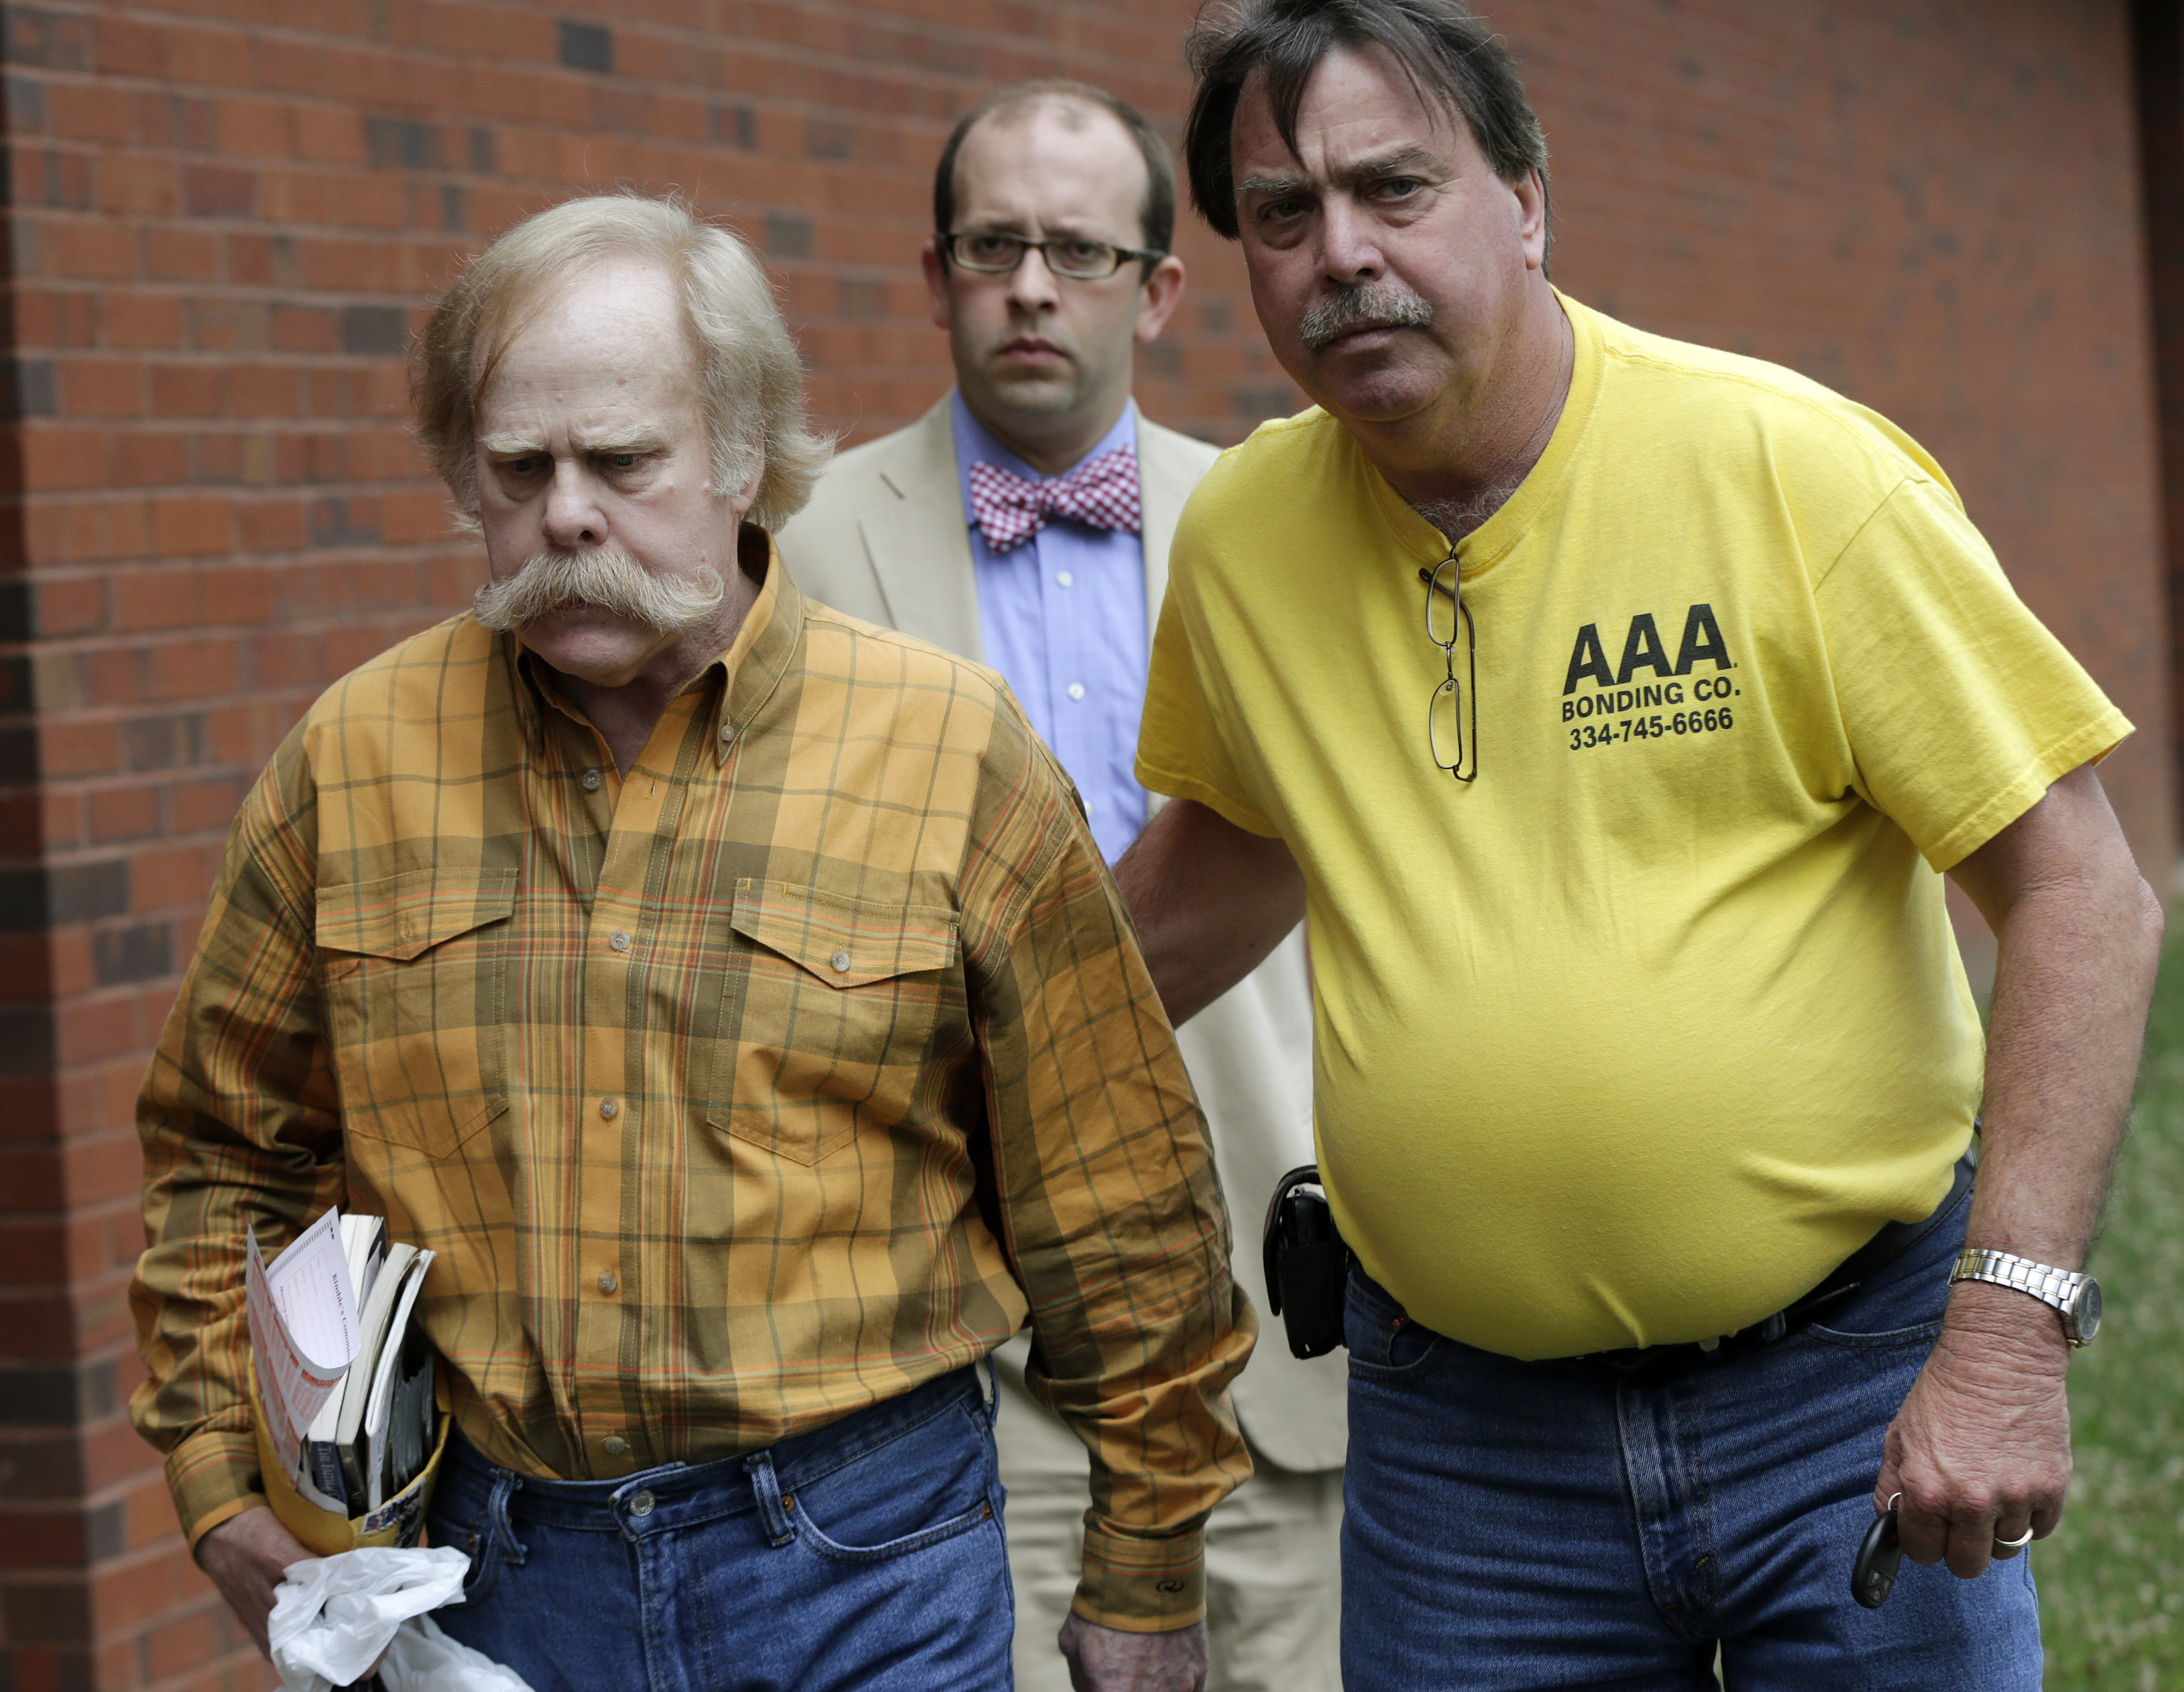 Auburn tree poisoner fails to appear in court for hearing